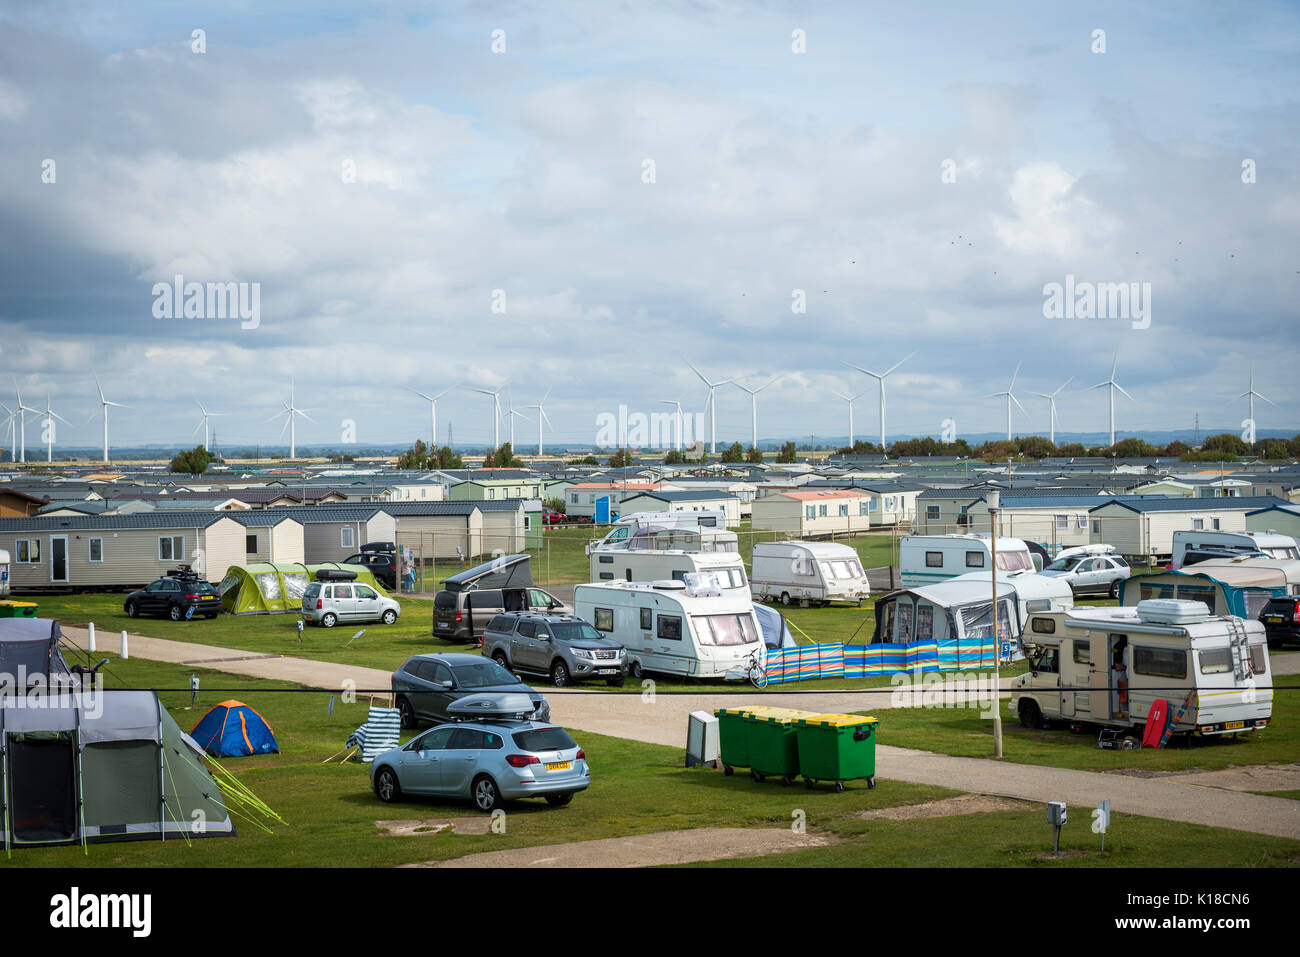 Campsite at Camber Sands, East Sussex, UK - Stock Image